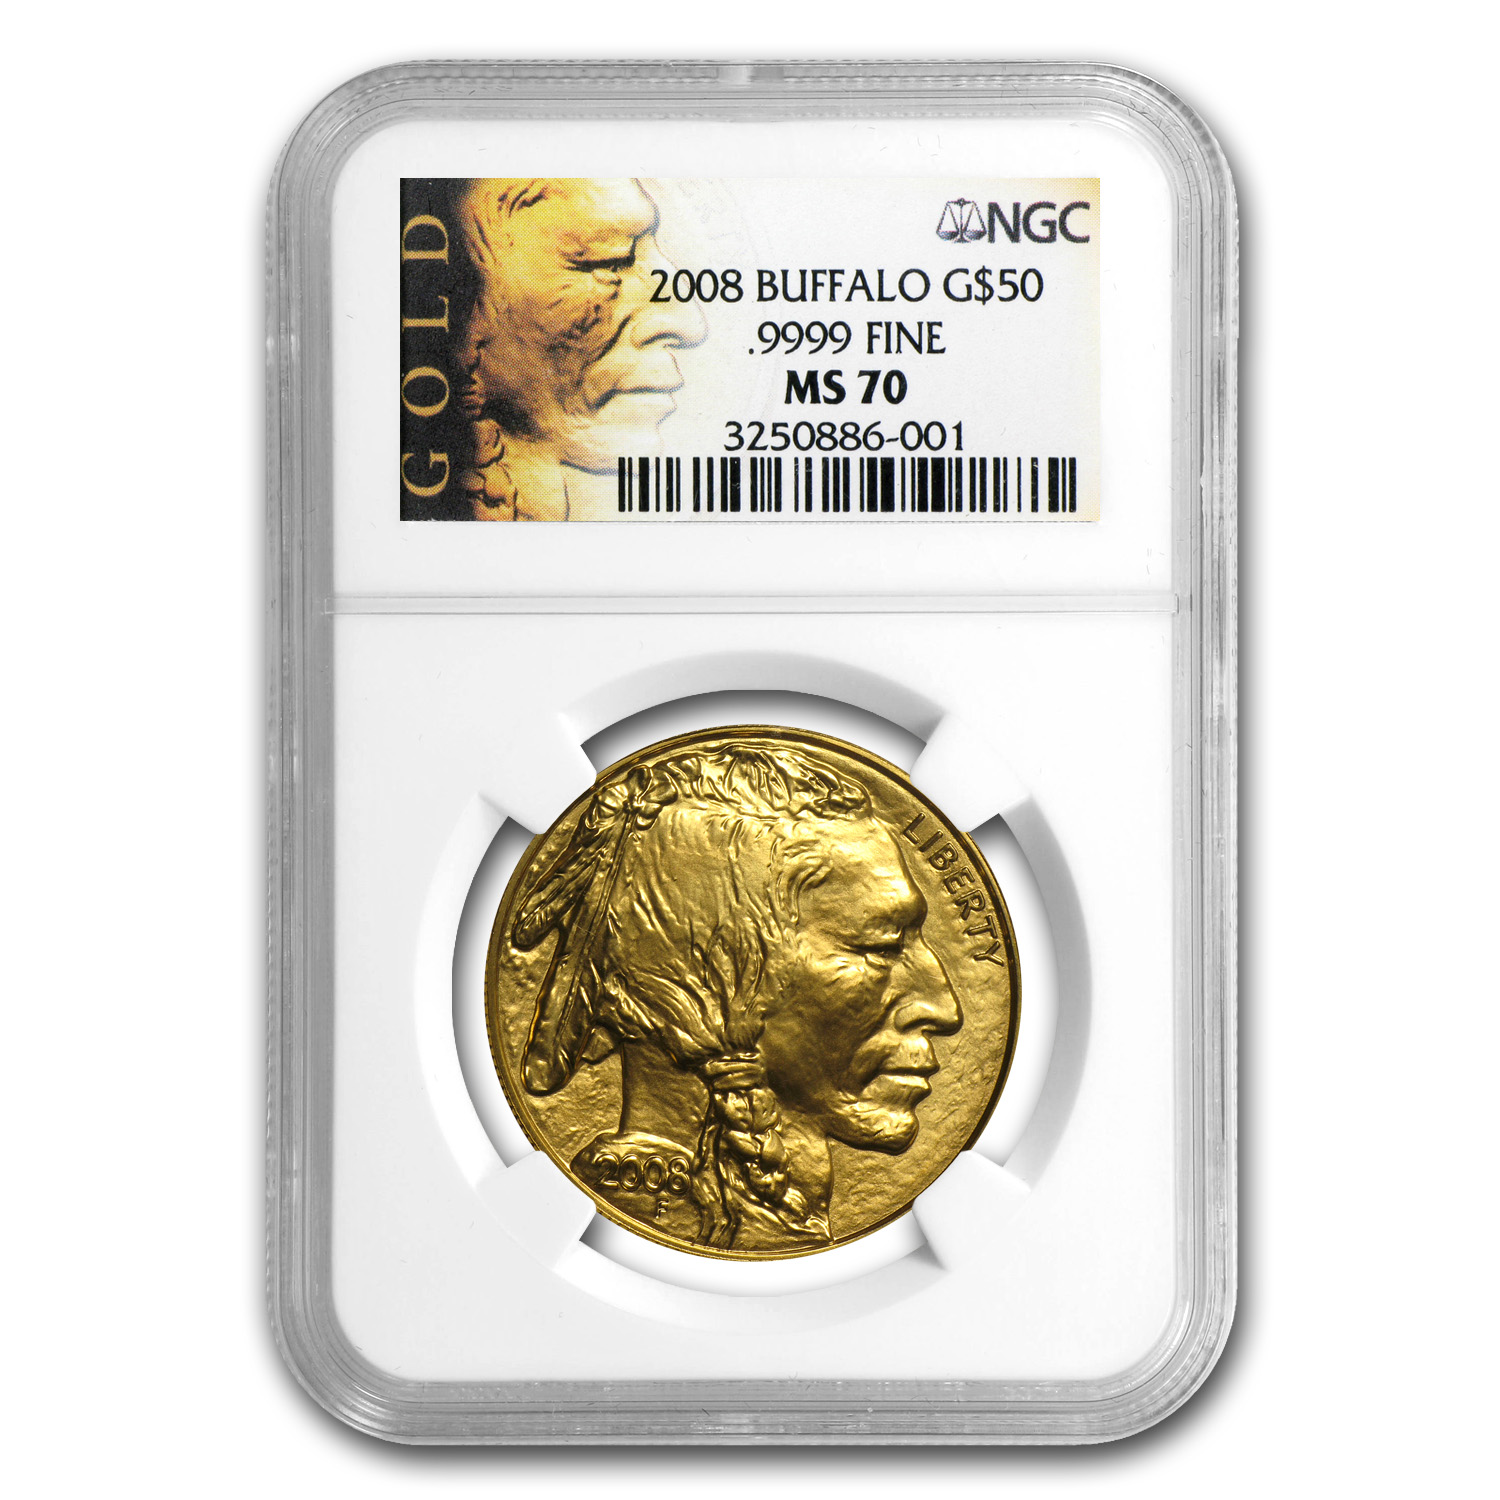 2006-2013 1 oz Gold Buffalo MS-70 NGC 8-Coin Set